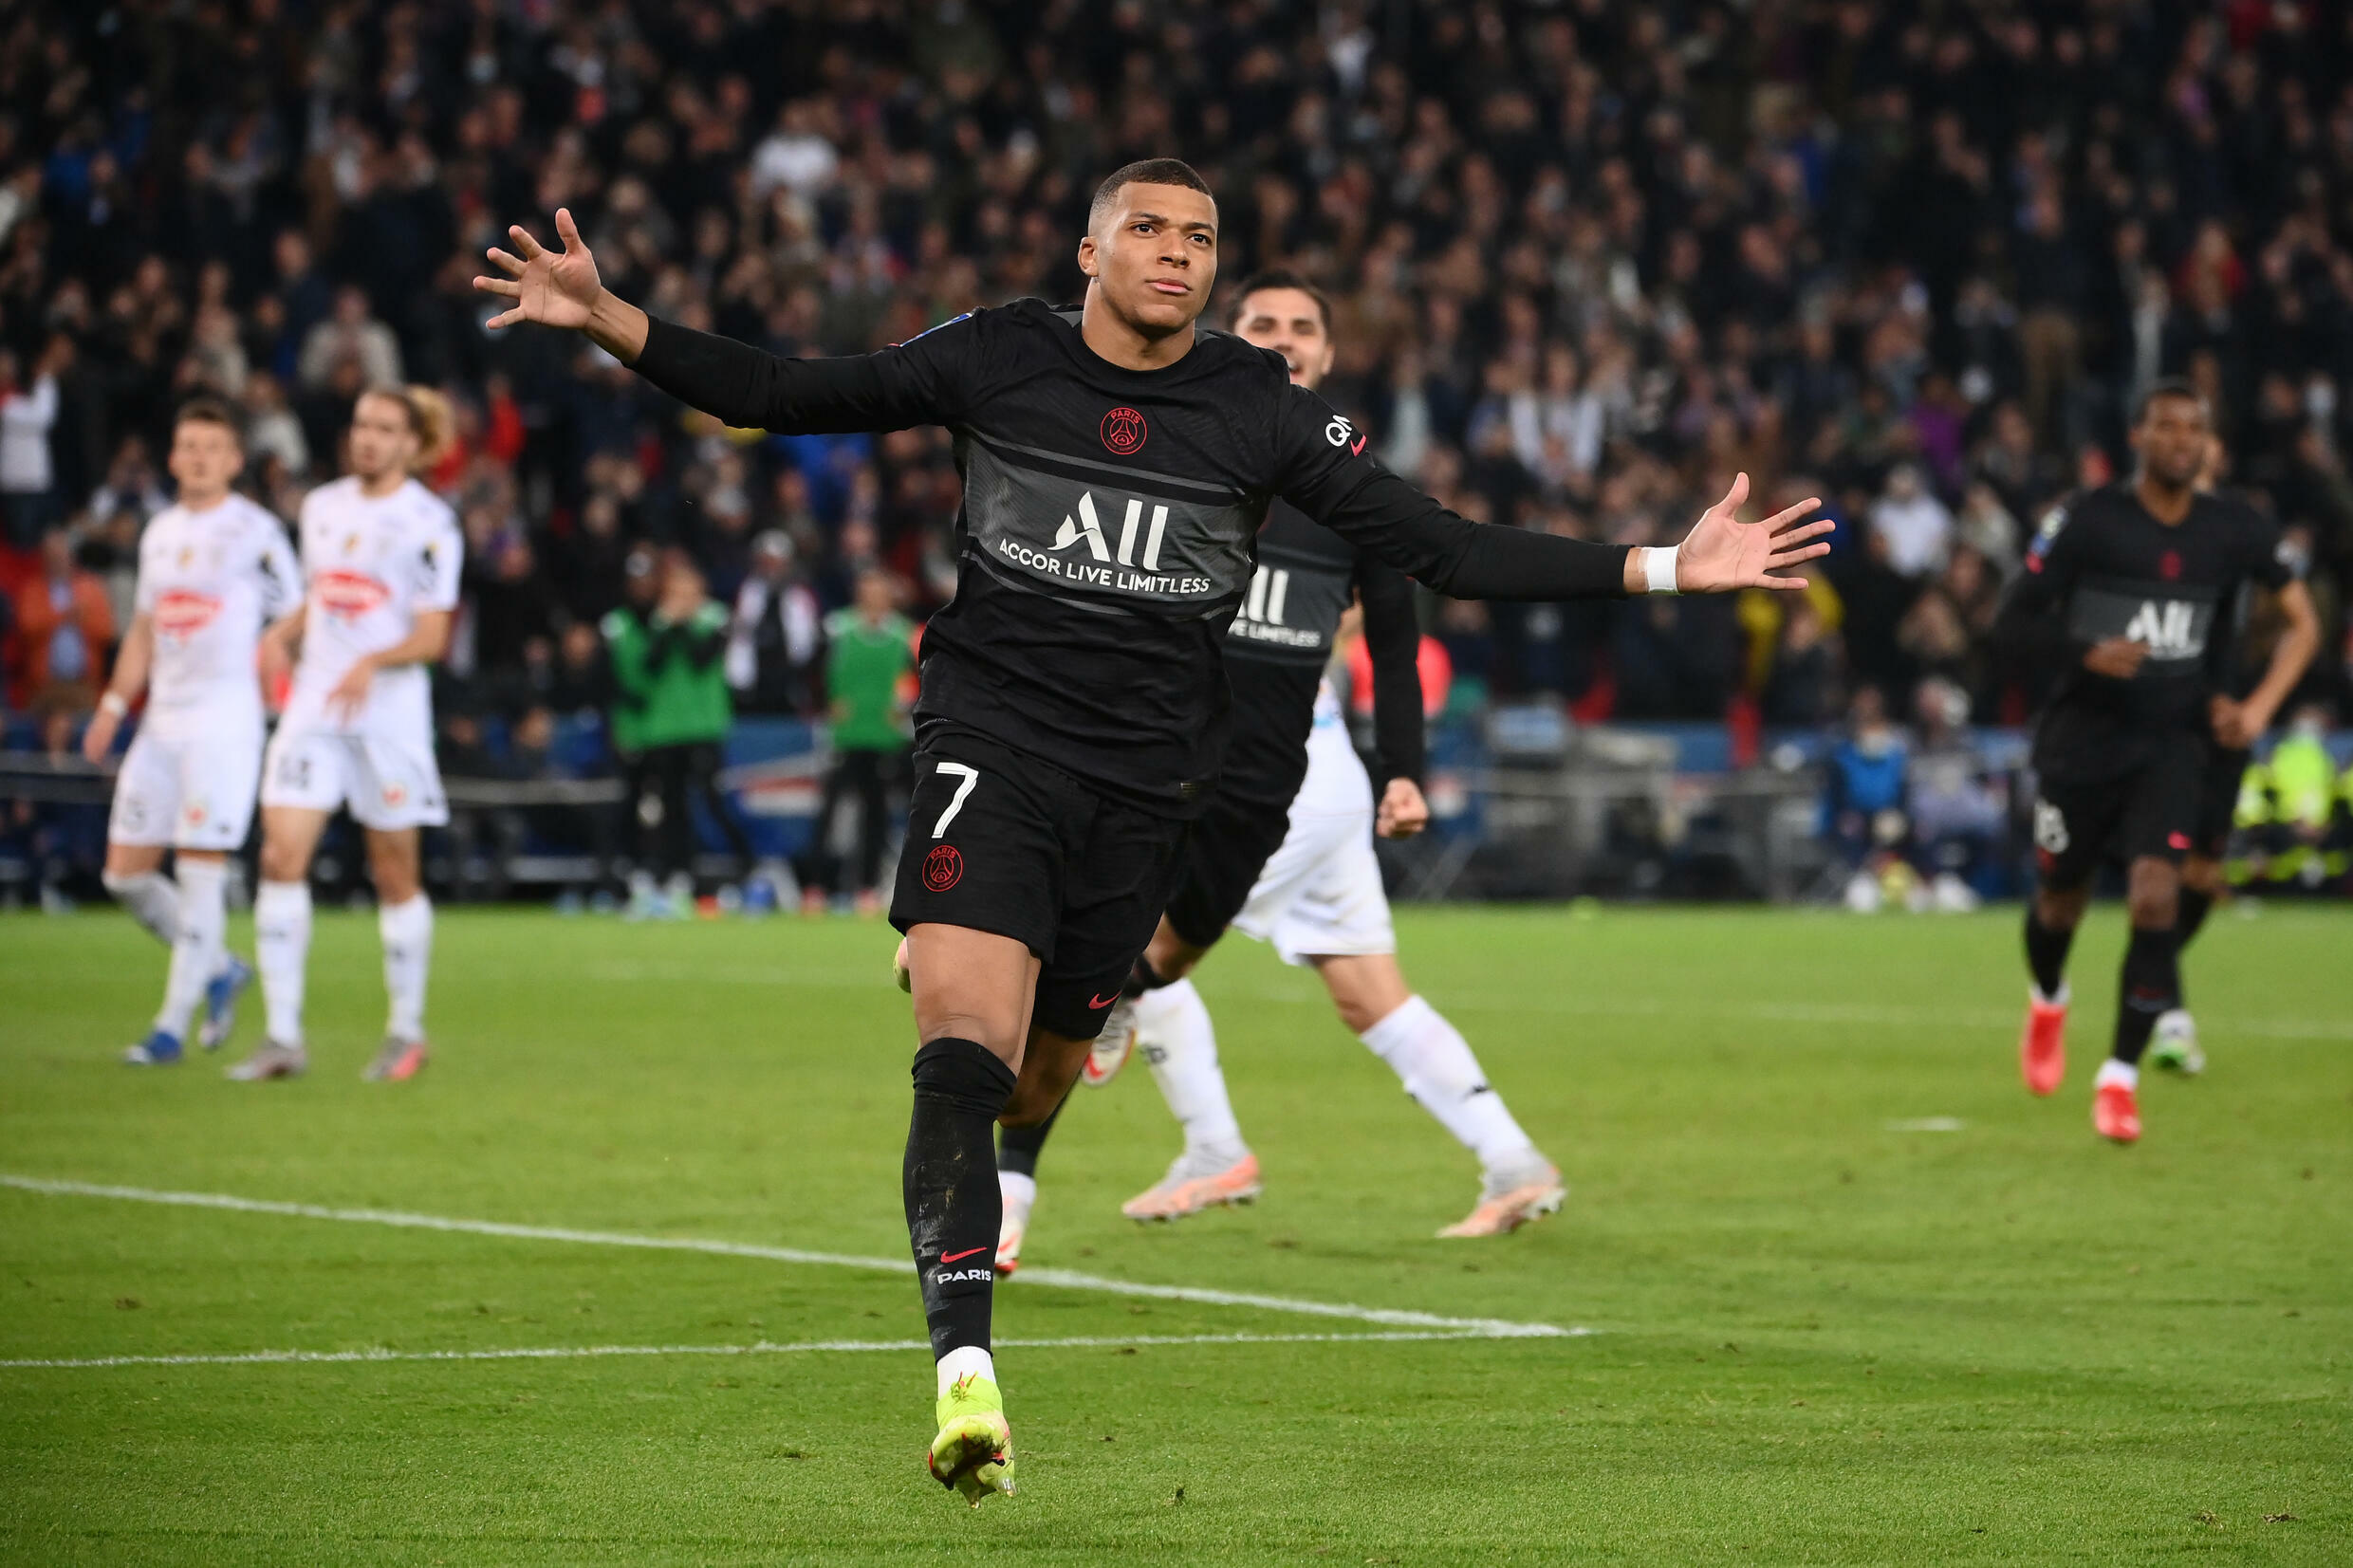 Kylian Mbappe's late penalty gave PSG victory against Angers